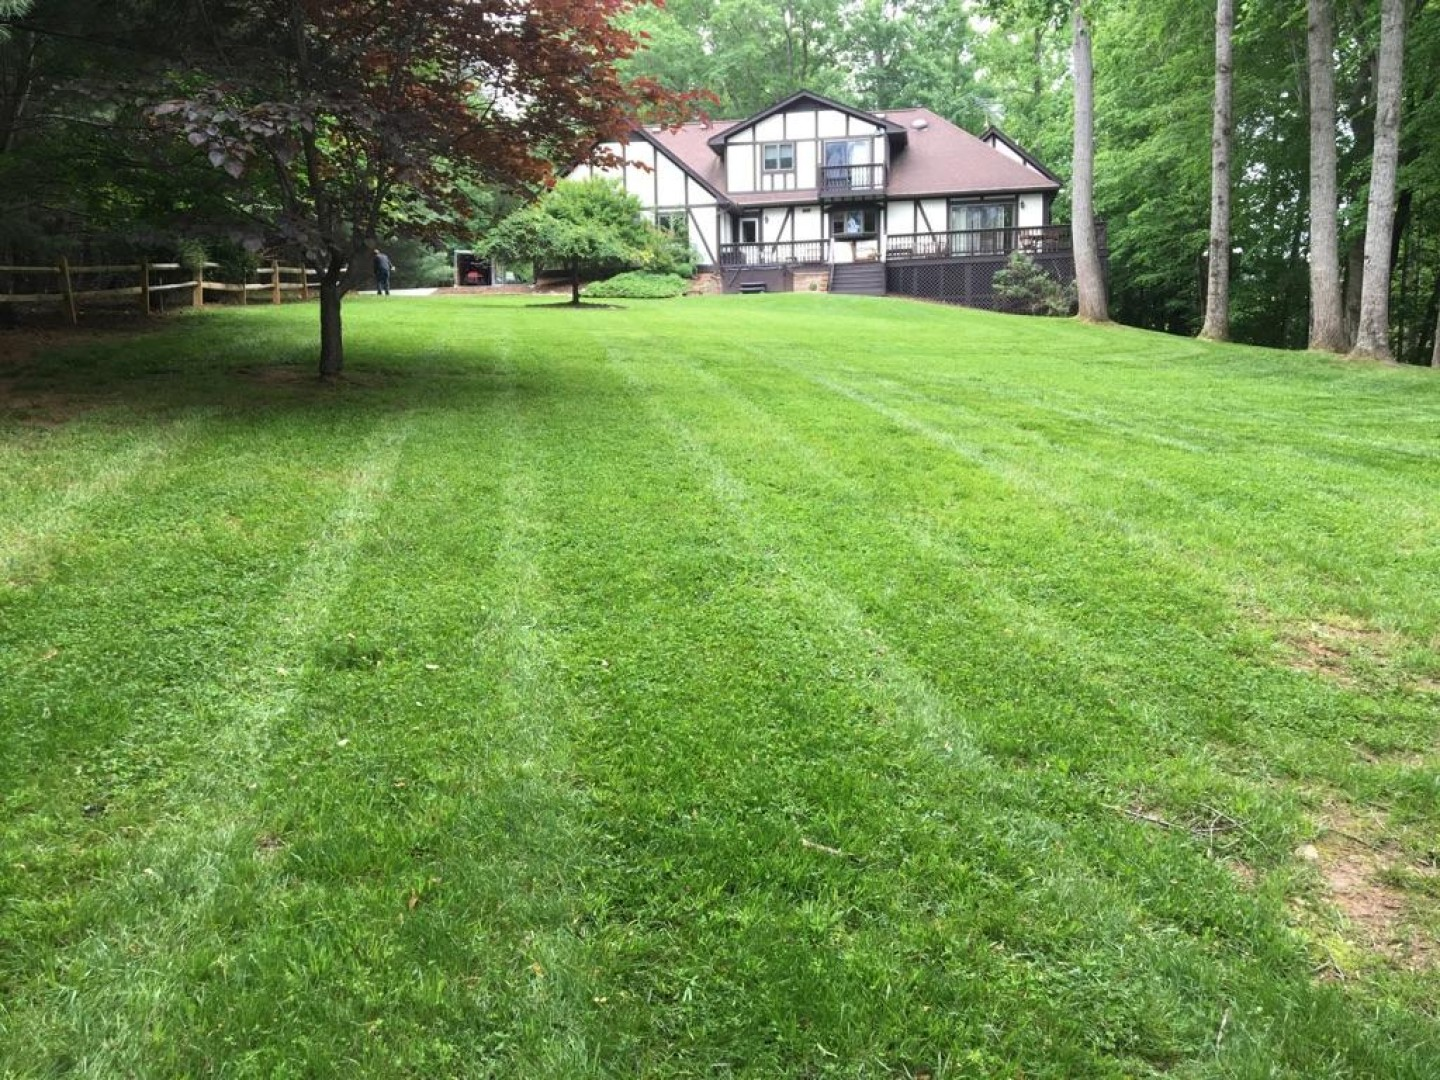 r-and-d-residential-lawn-care